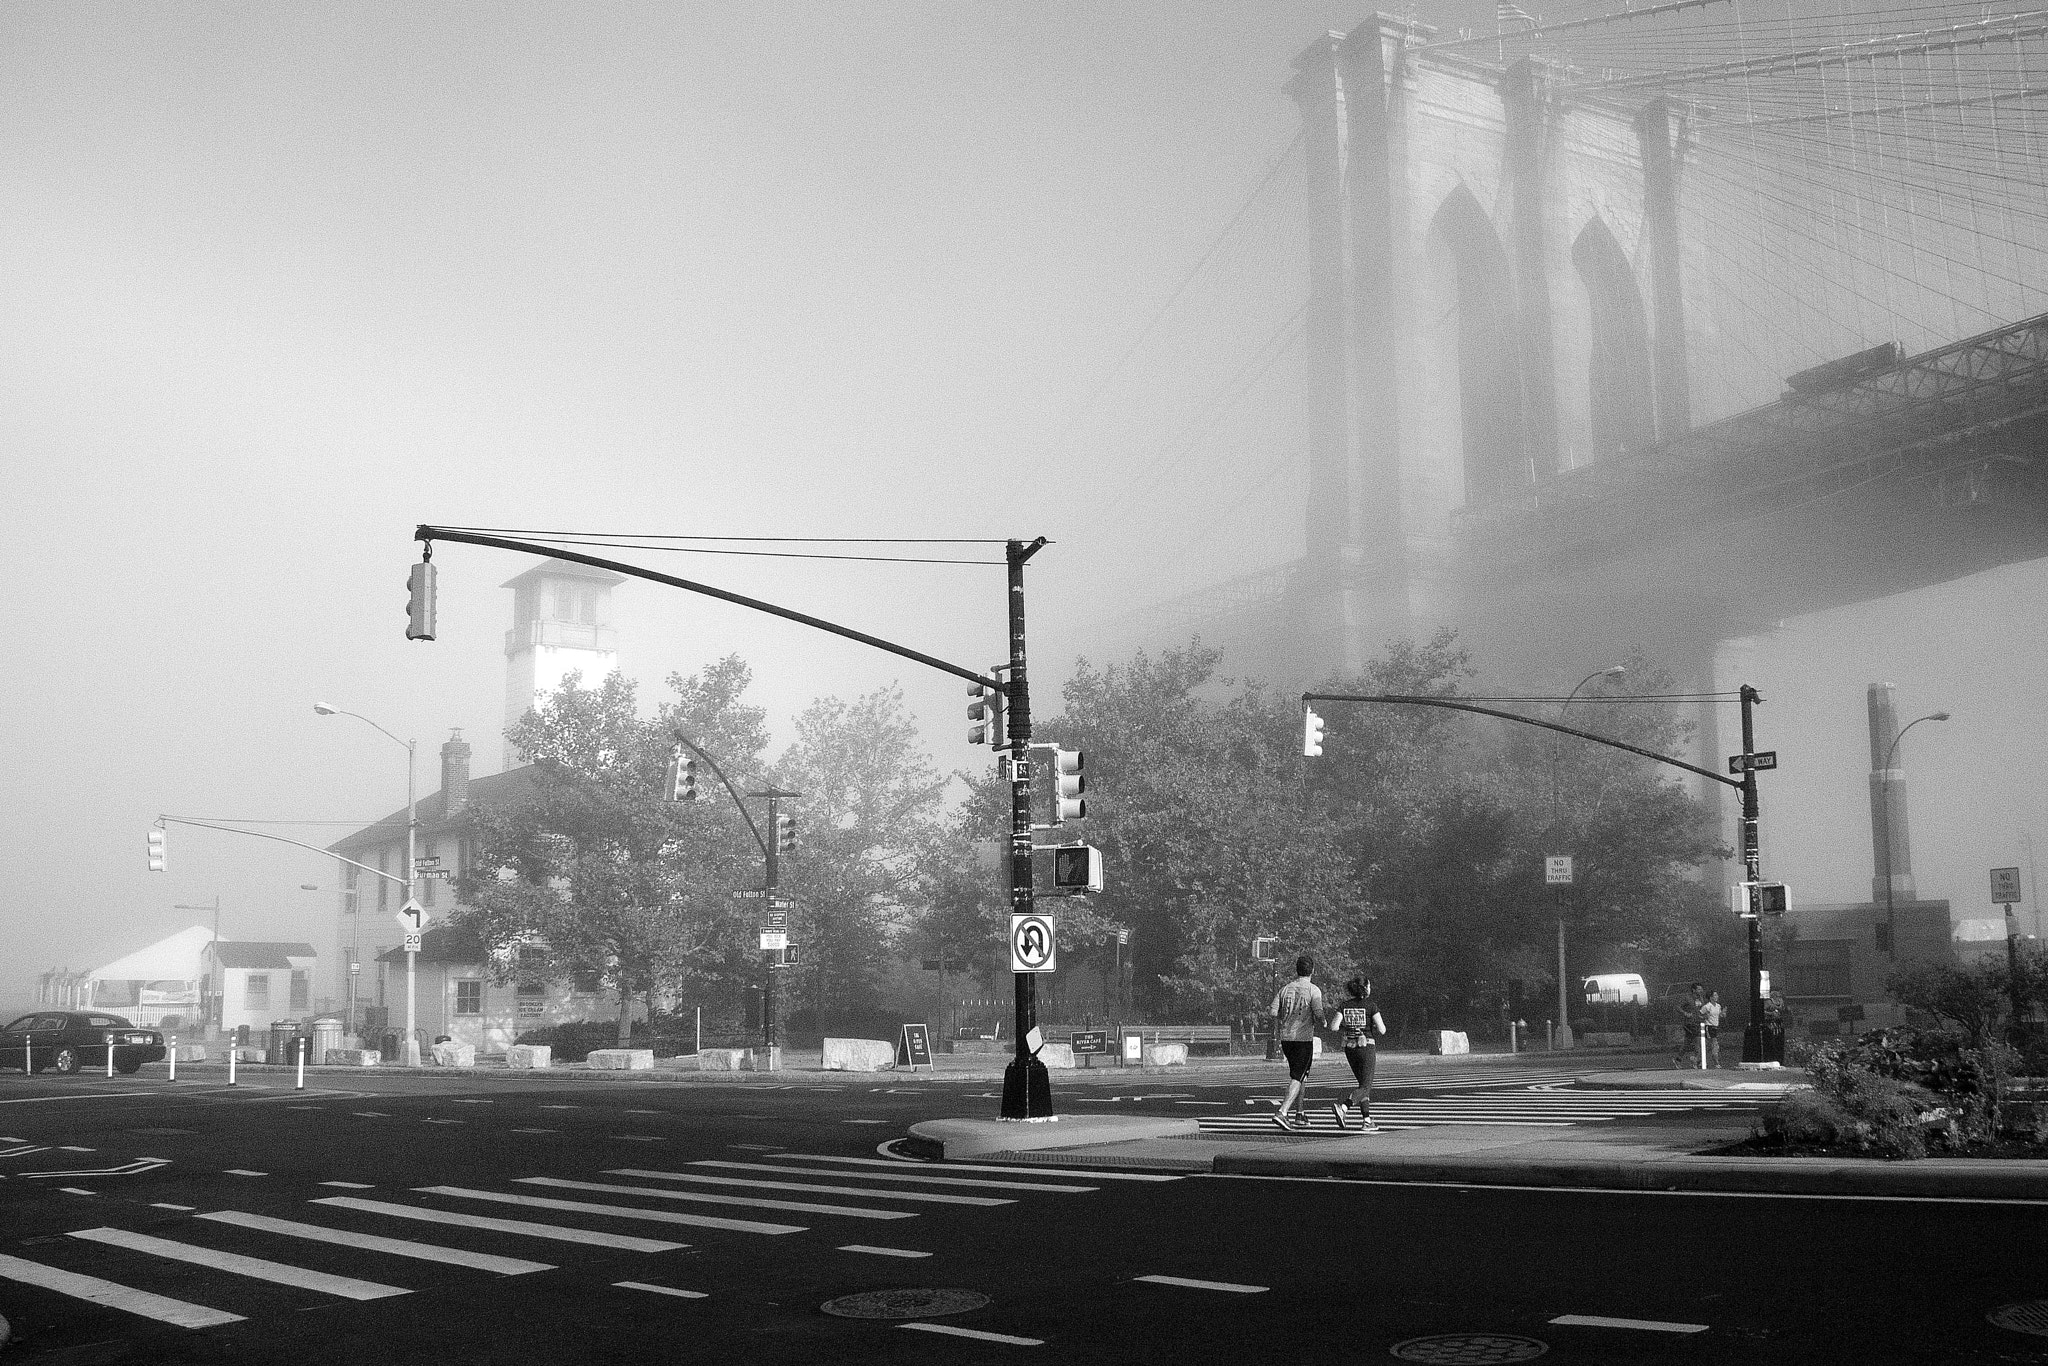 Photograph Foggy Morning in Dumbo by Amelie Belanger on 500px